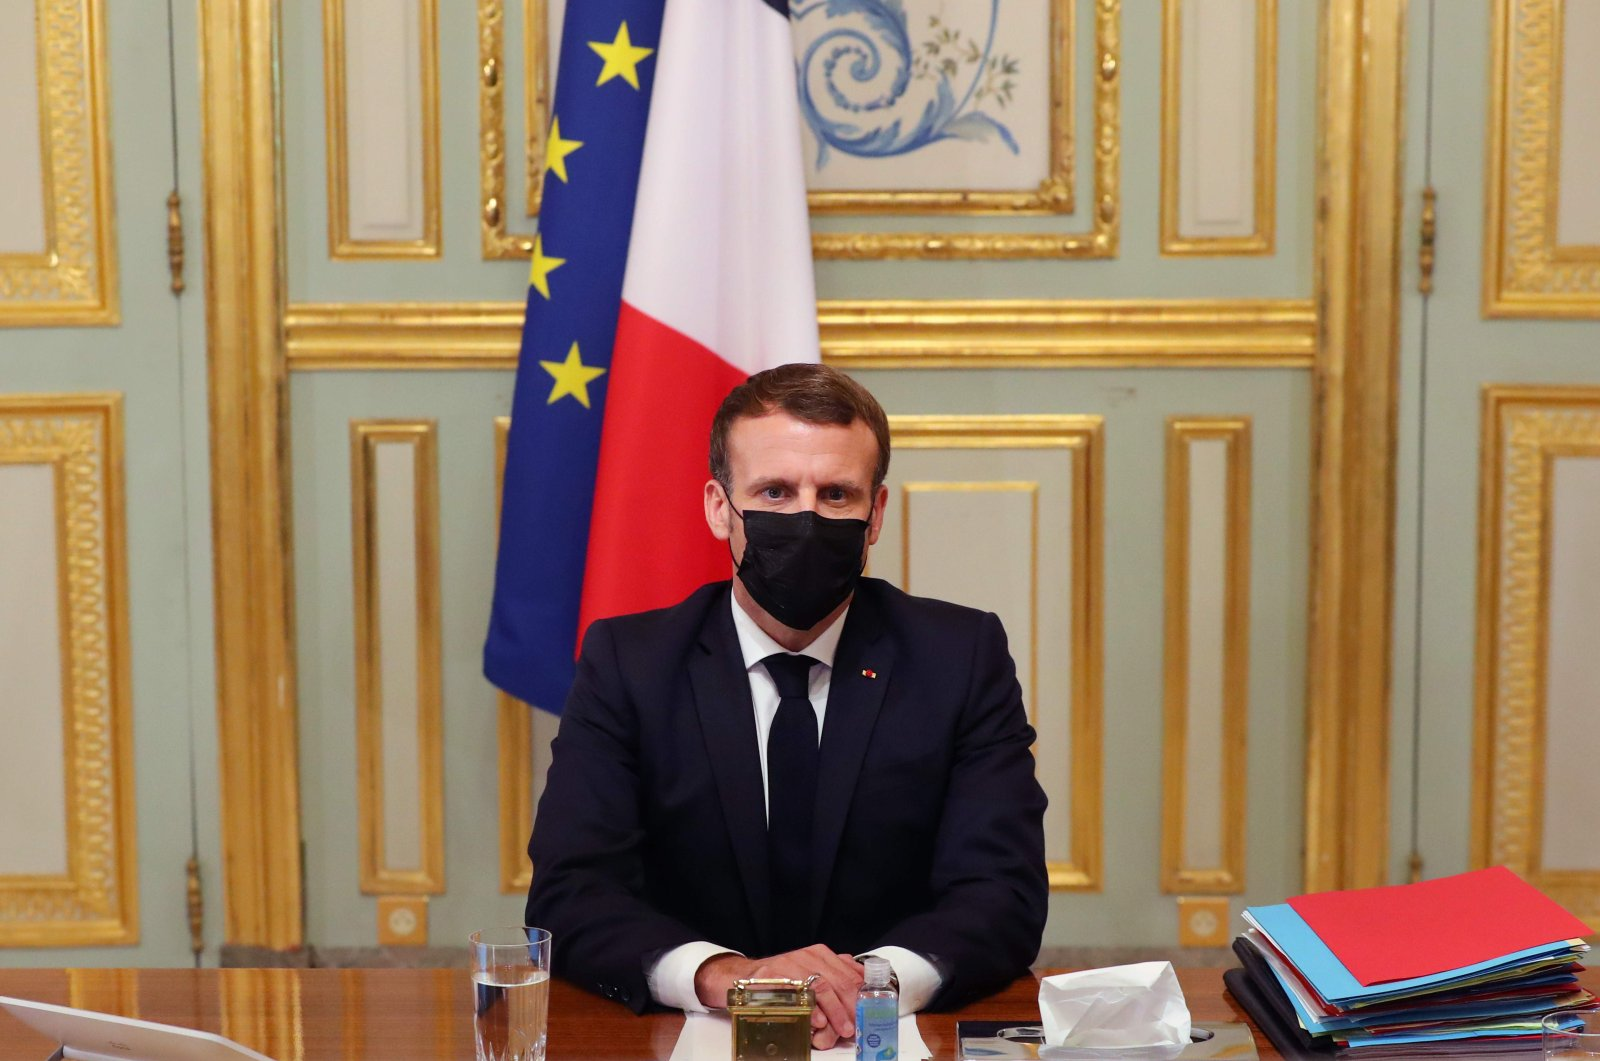 French President Emmanuel Macron takes part in a video conference at the Elysee Palace in Paris, France, Oct. 29, 2020. (AFP Photo)